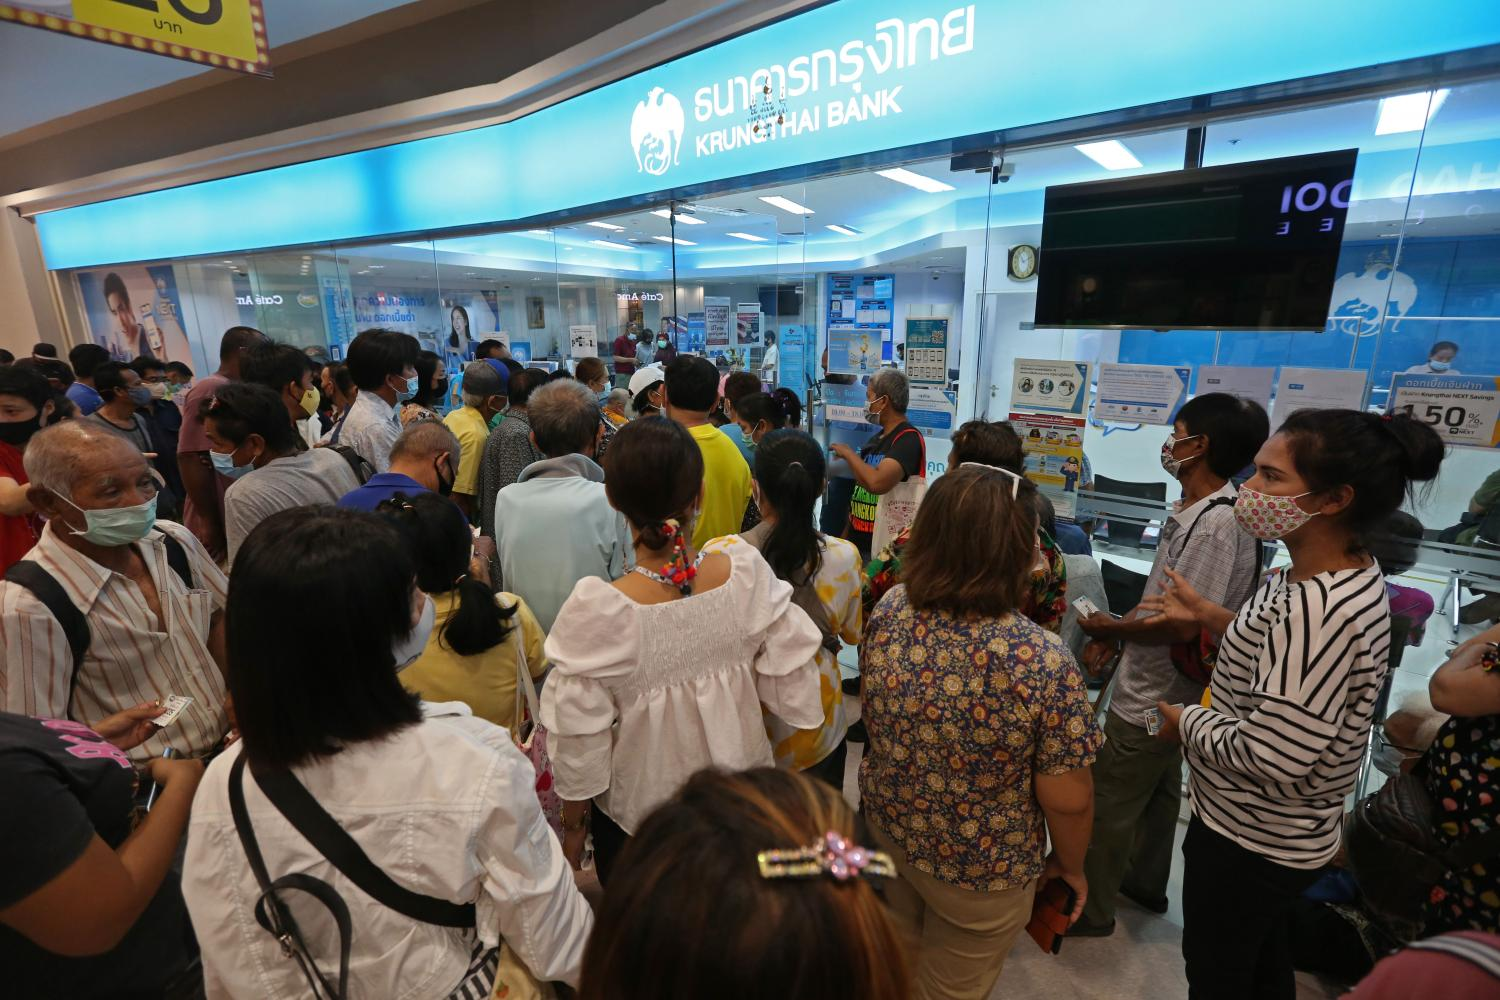 Hundreds of people wait at a Krungthai Bank branch in a city superstore to register for financial aid under the Rao Chana scheme.(Photo by Varuth Hirunyatheb)